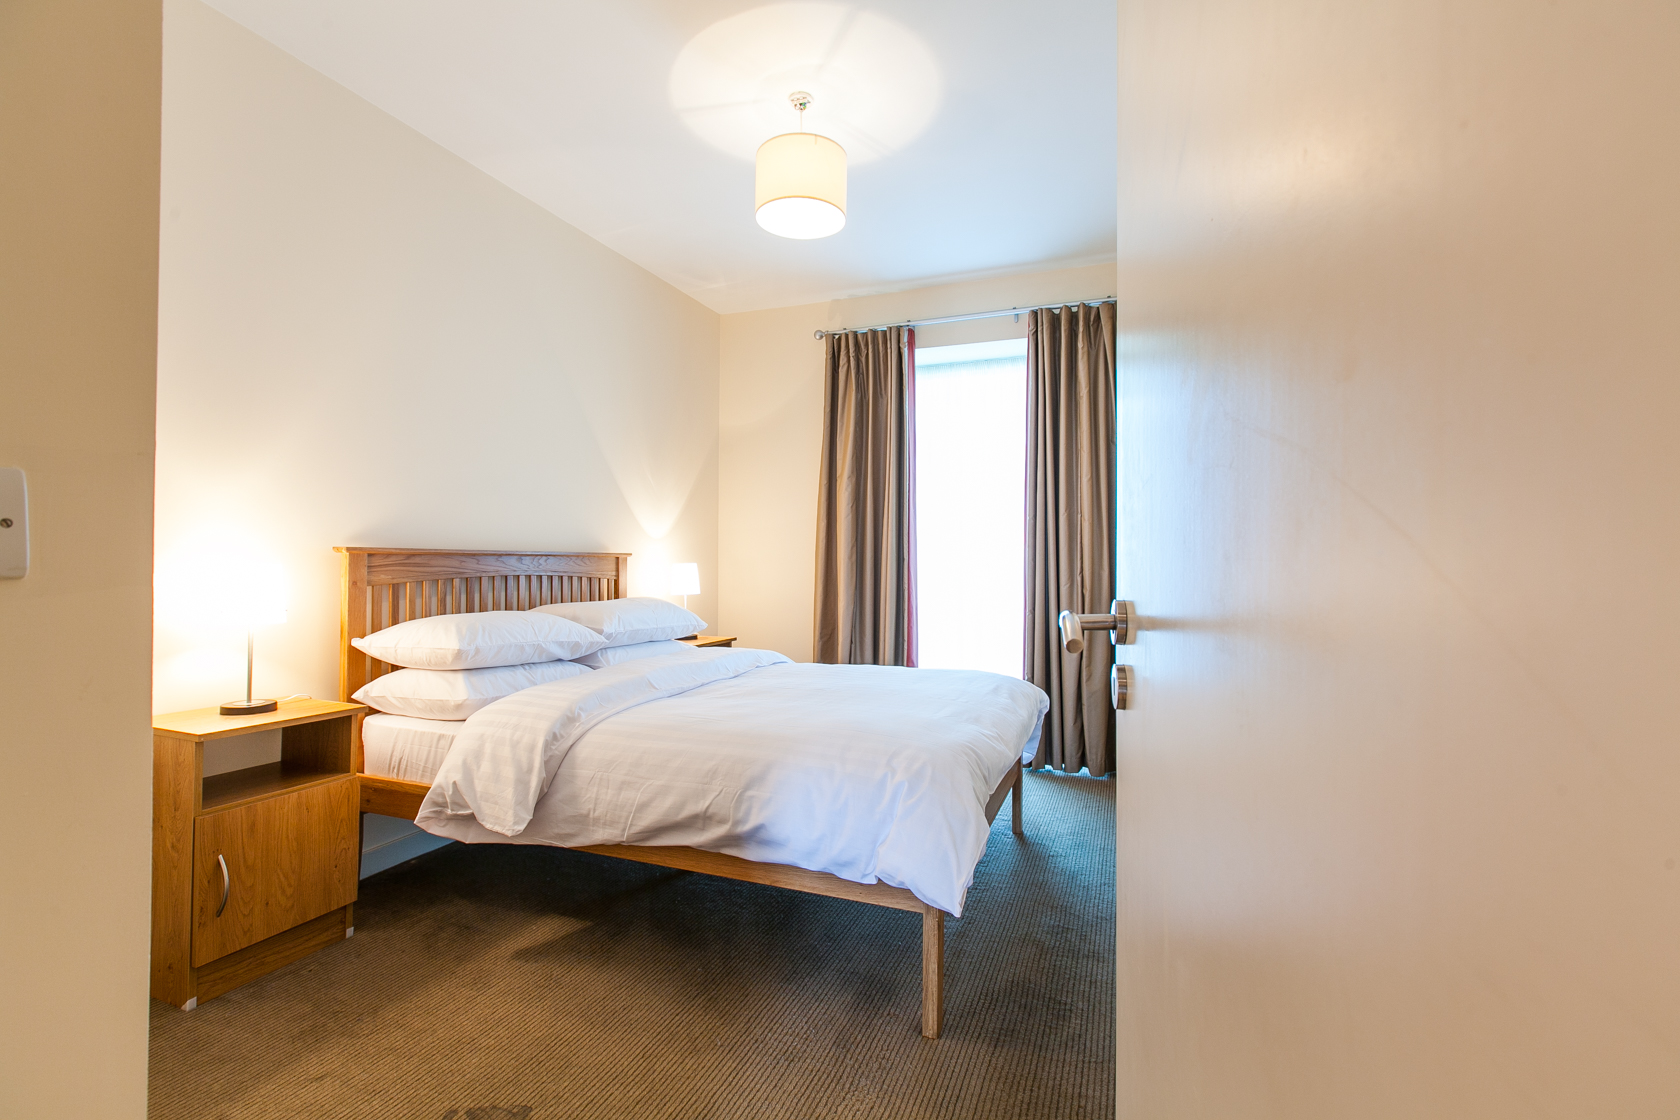 Bed at The Forum Sandyford Apartment, Sandyford, Dublin - Citybase Apartments